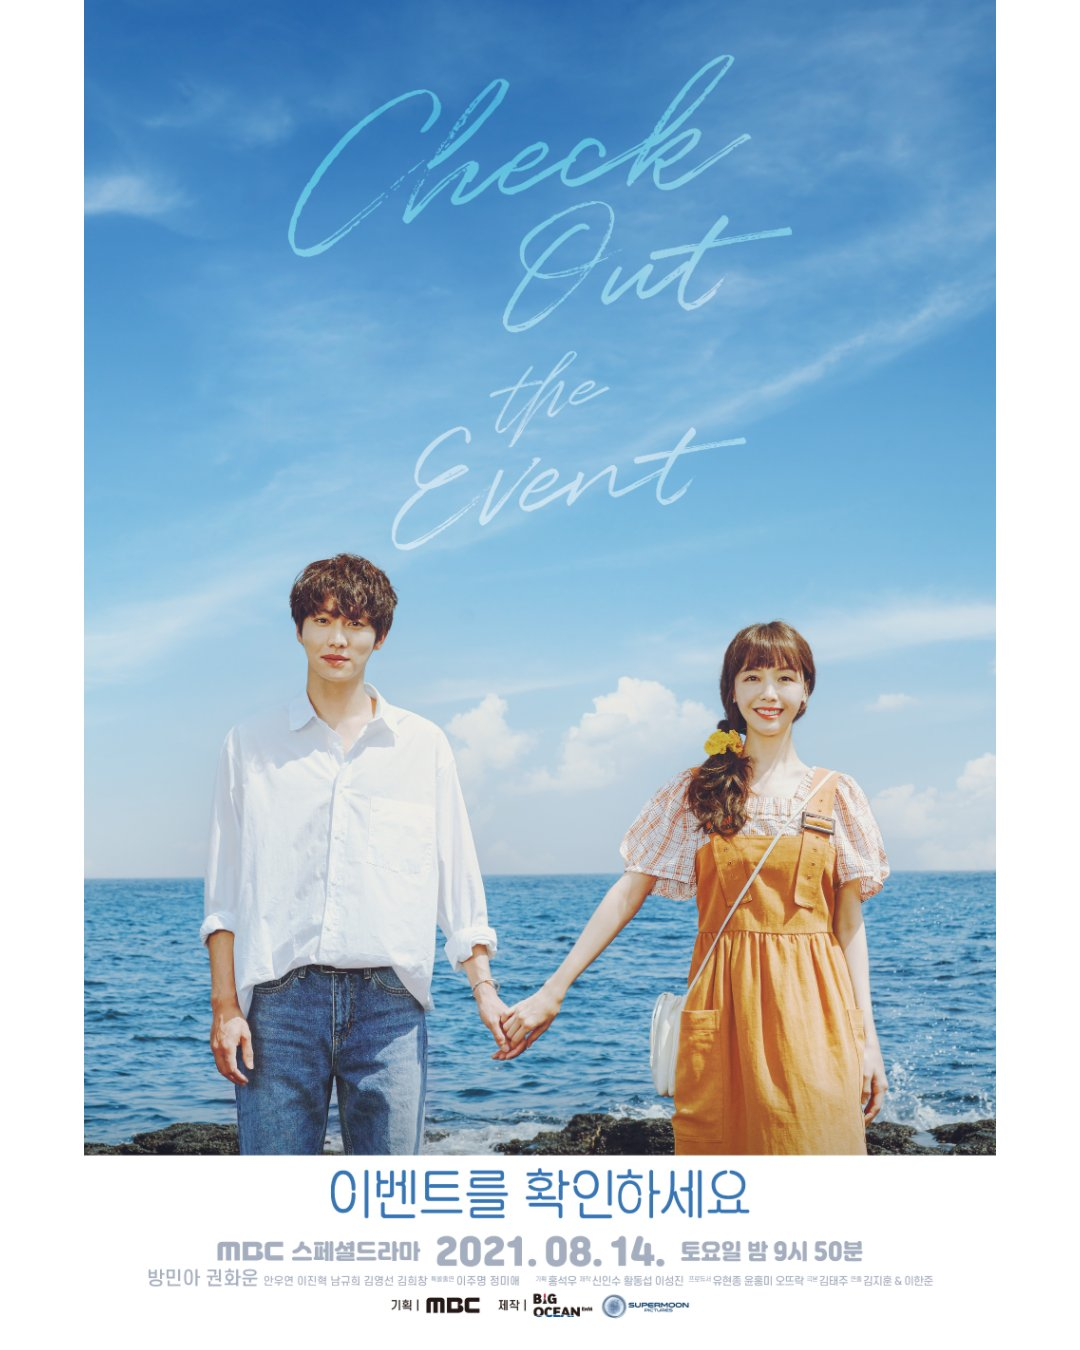 korean dramas august 2021 - check out the event